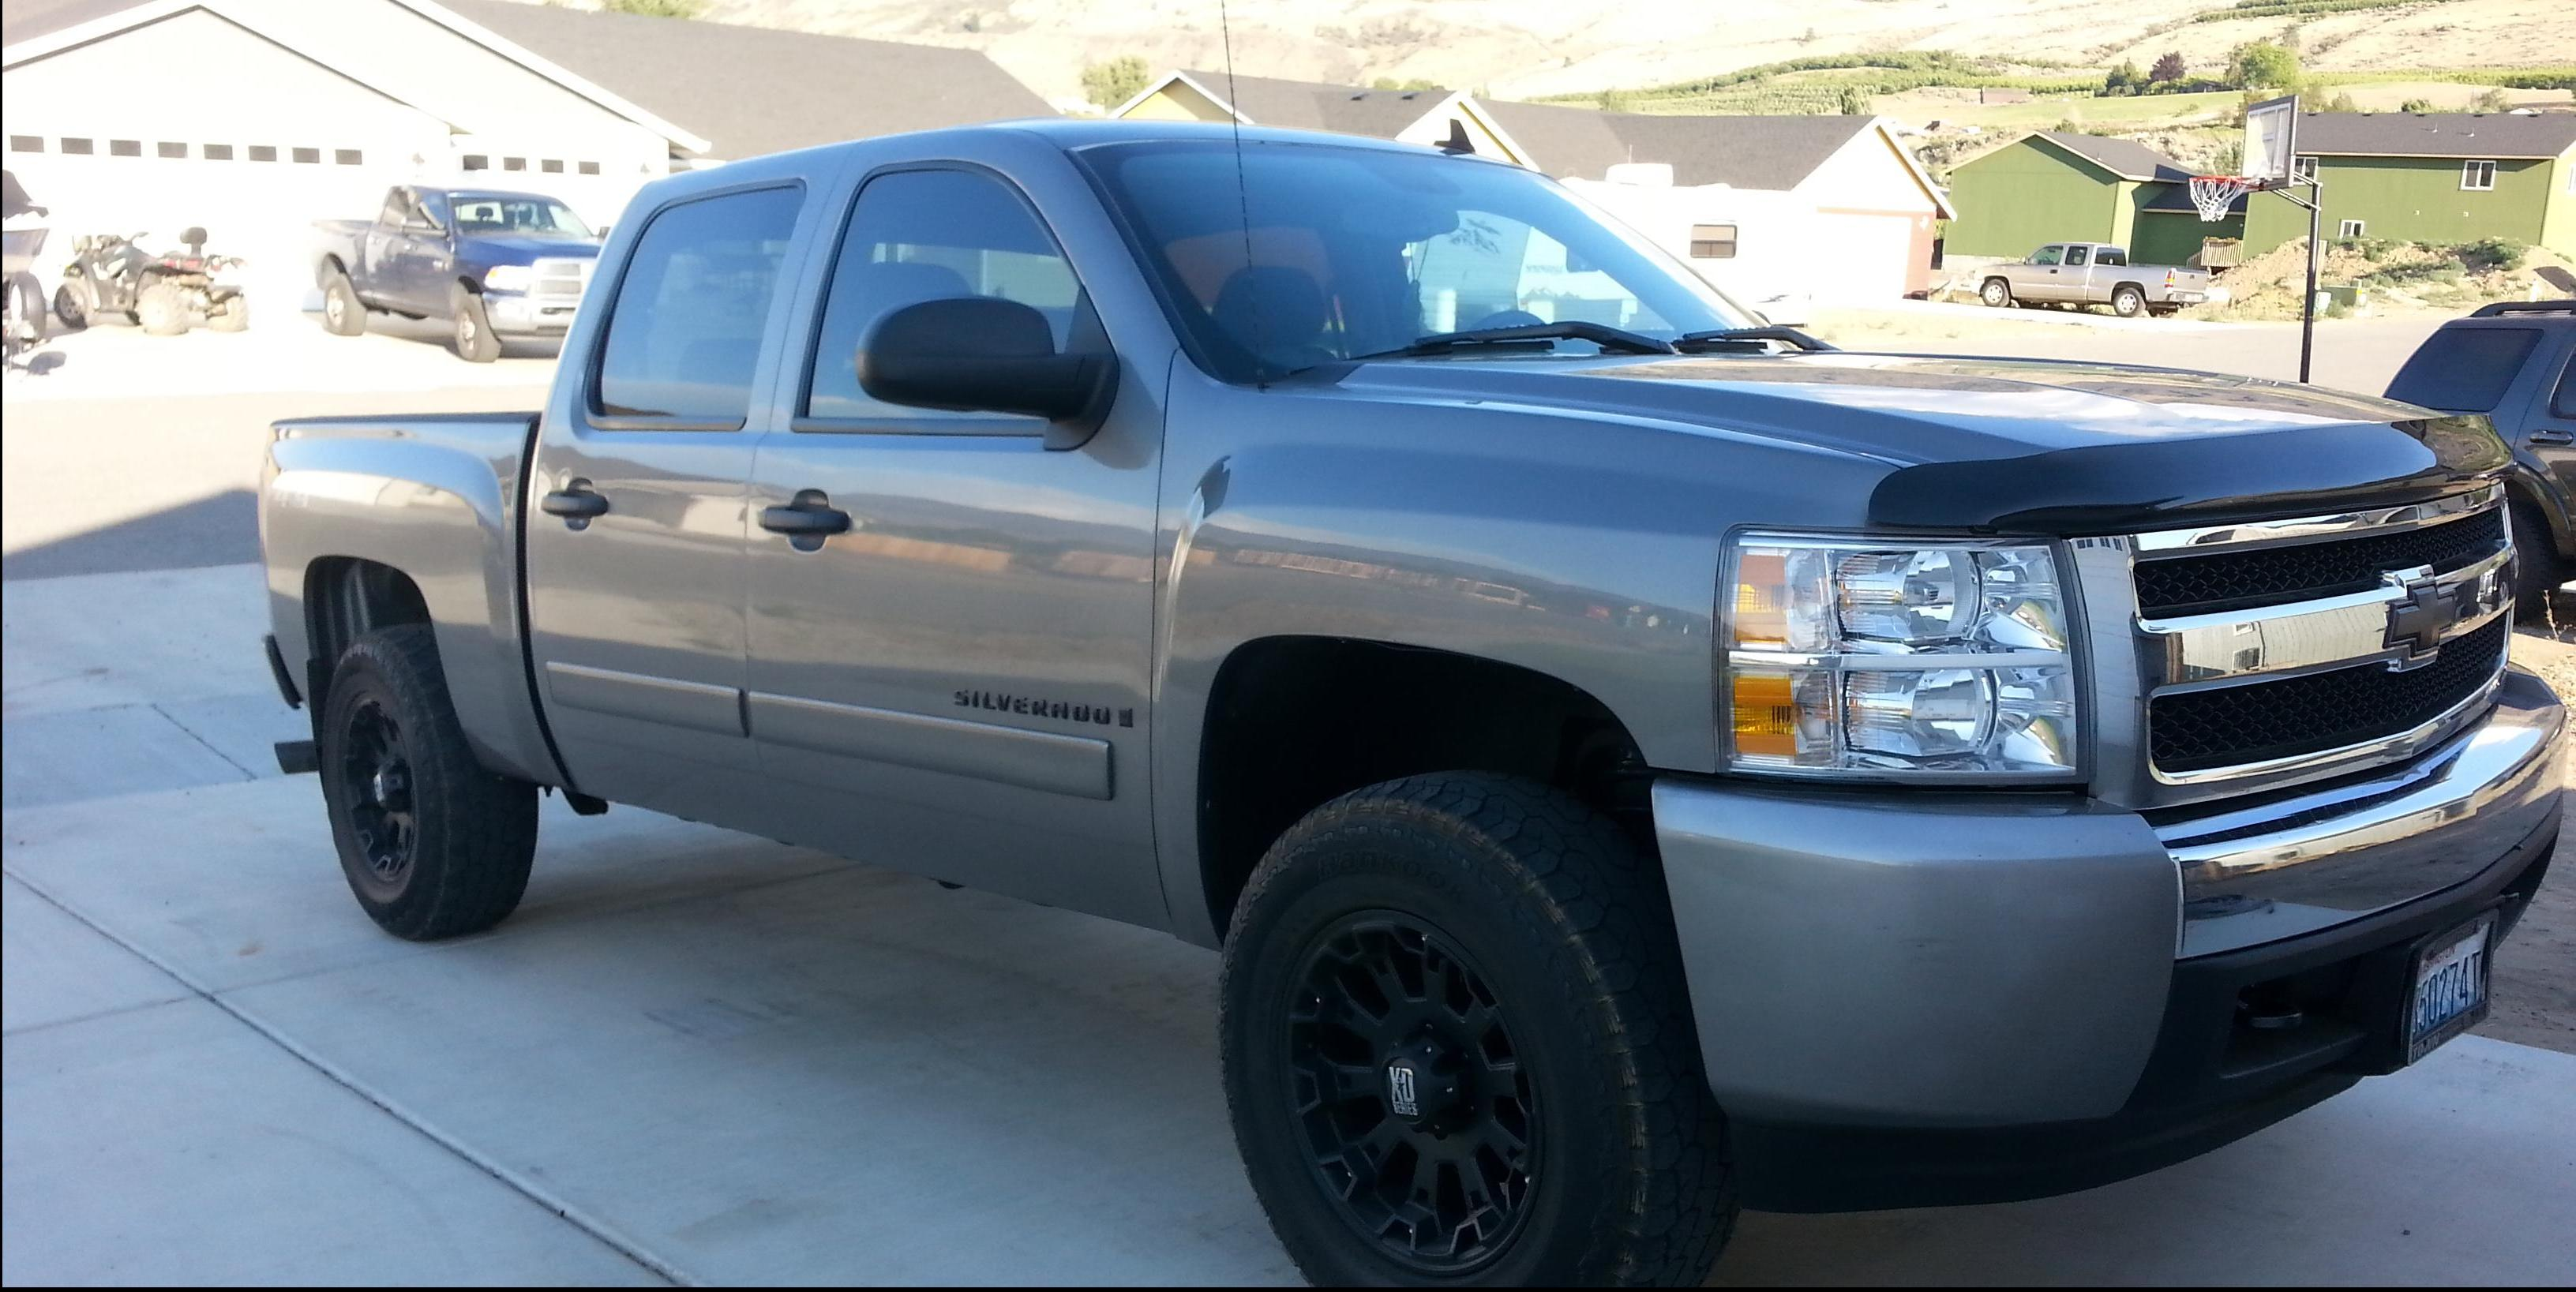 2015 chevrolet silverado 1500 crew cab lt view all 2015 chevrolet silverado 1500 crew cab lt. Black Bedroom Furniture Sets. Home Design Ideas